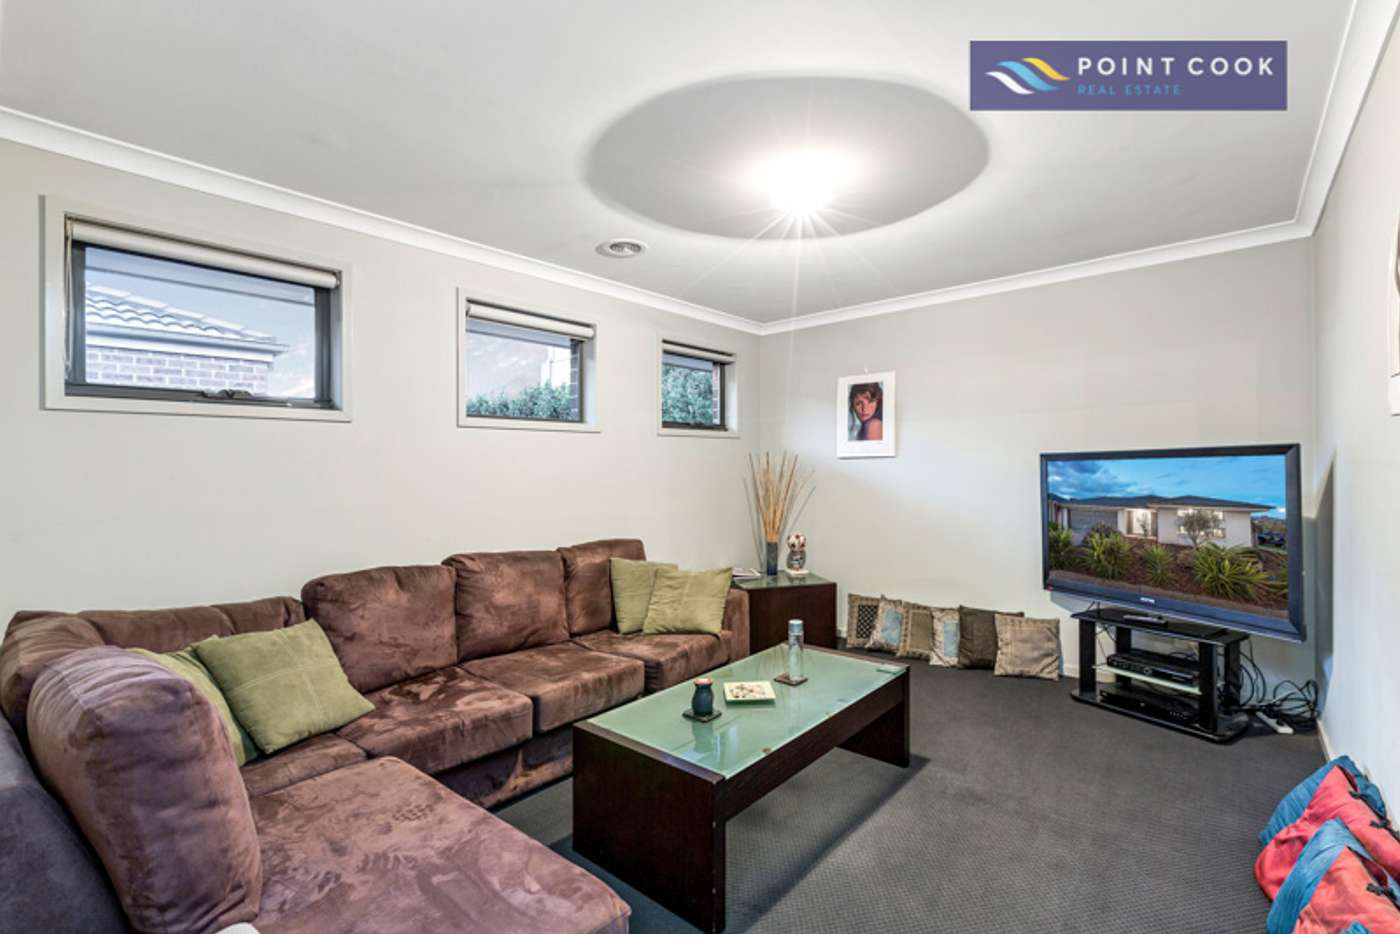 Sixth view of Homely house listing, 130 Yuruga Boulevard, Point Cook VIC 3030